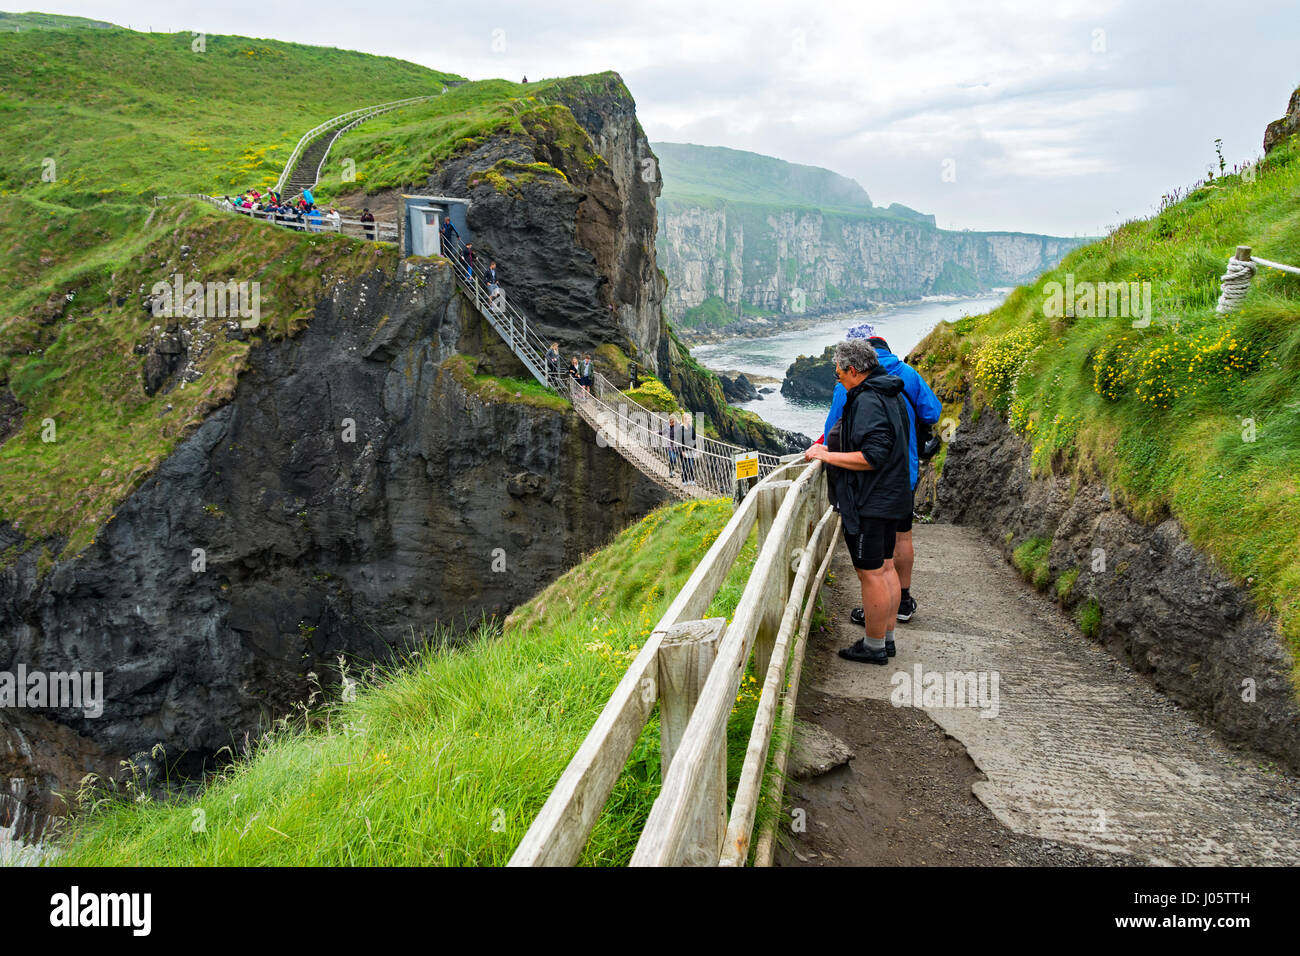 Carrick-a-Rede rope bridge, Causeway Coast, County Antrim, Northern Ireland, UK - Stock Image